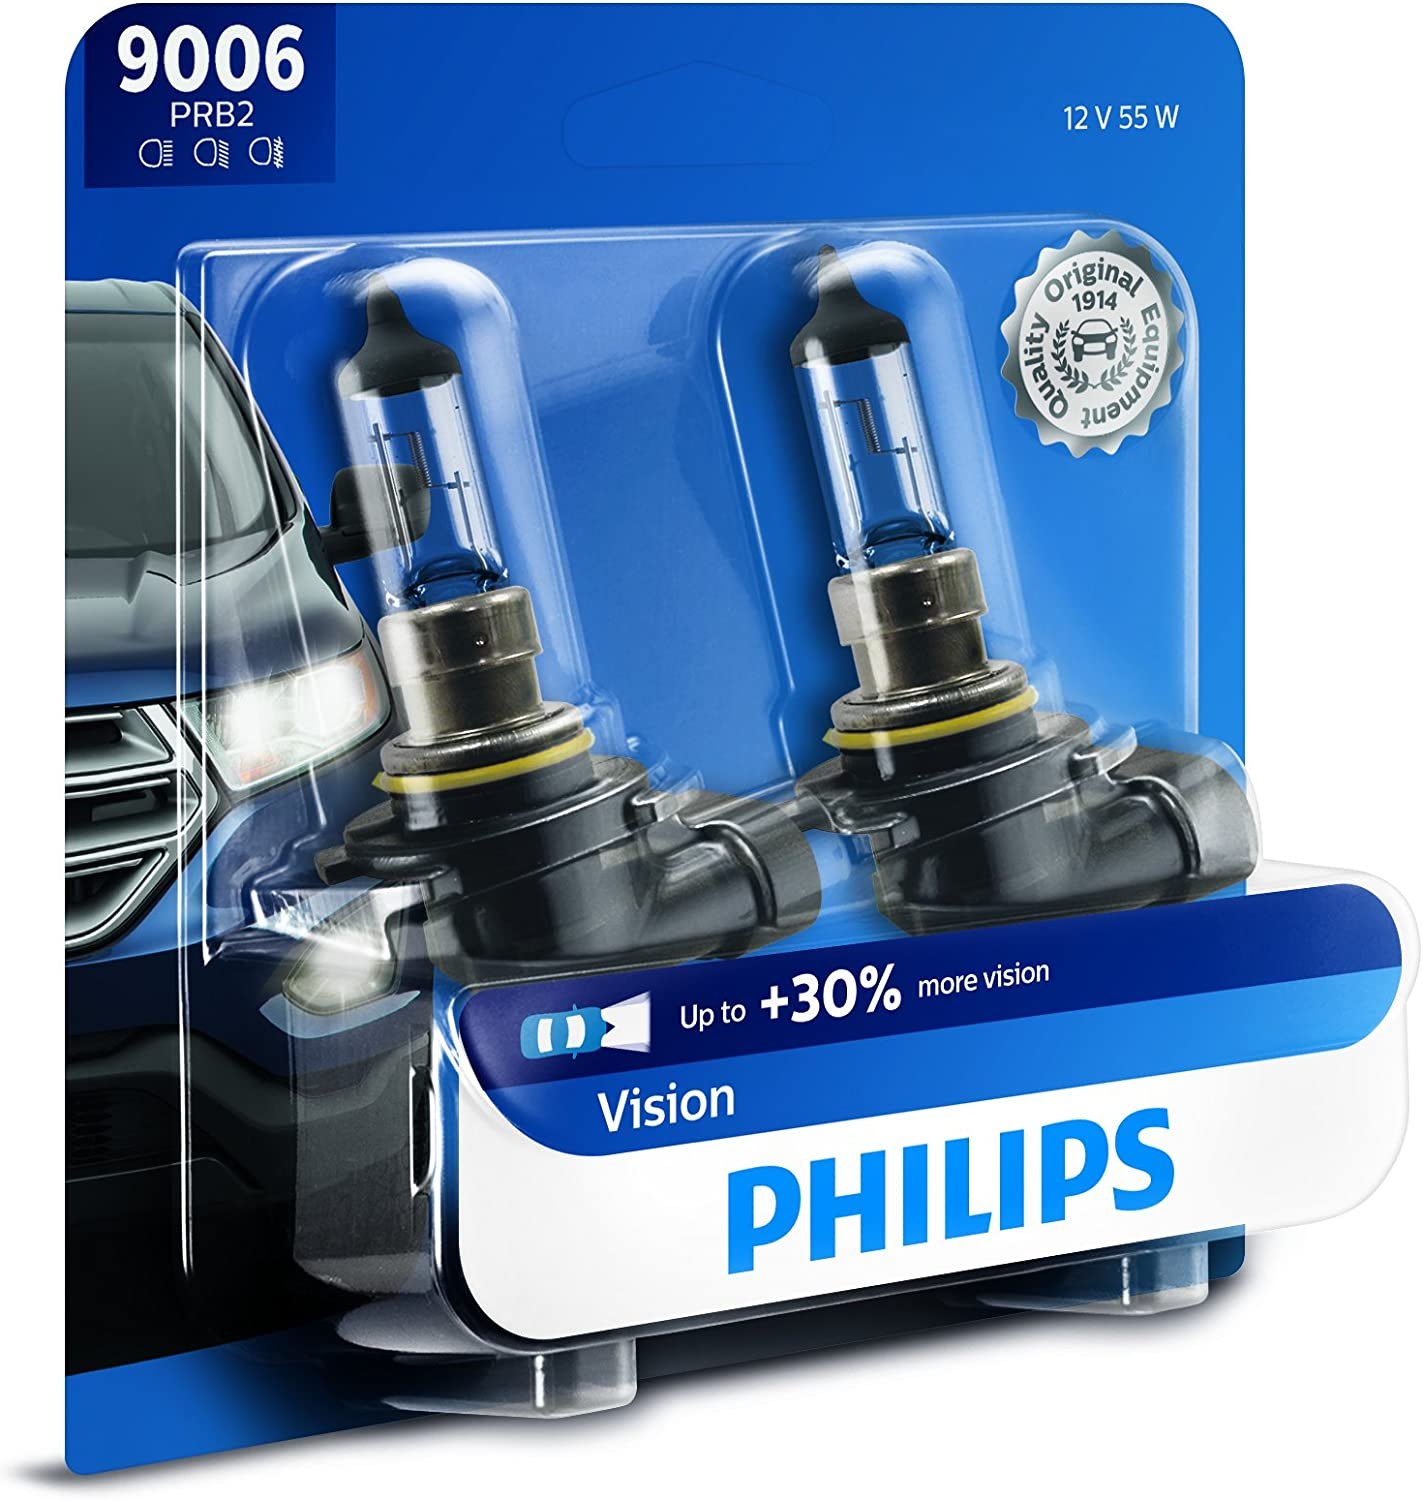 Philips 9006 Upgrade Headlight Bulb with up to 30% More Vision, 2 Pack